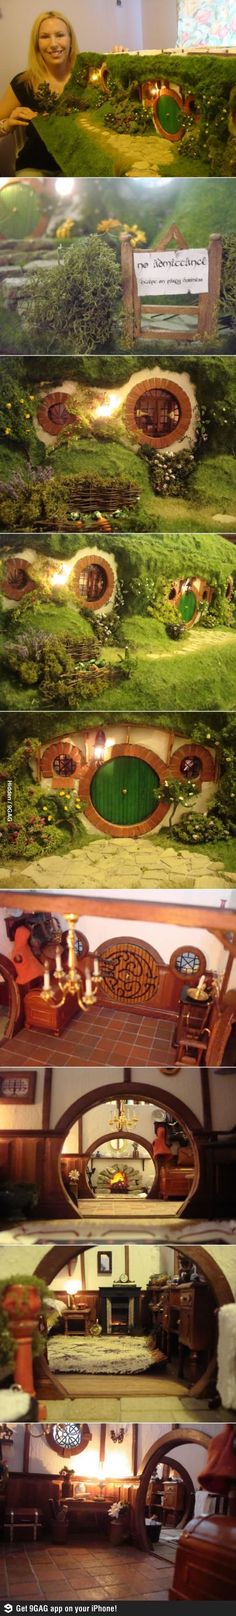 Awesome Hobbit Dollhouse! I want to be best friends with this woman.